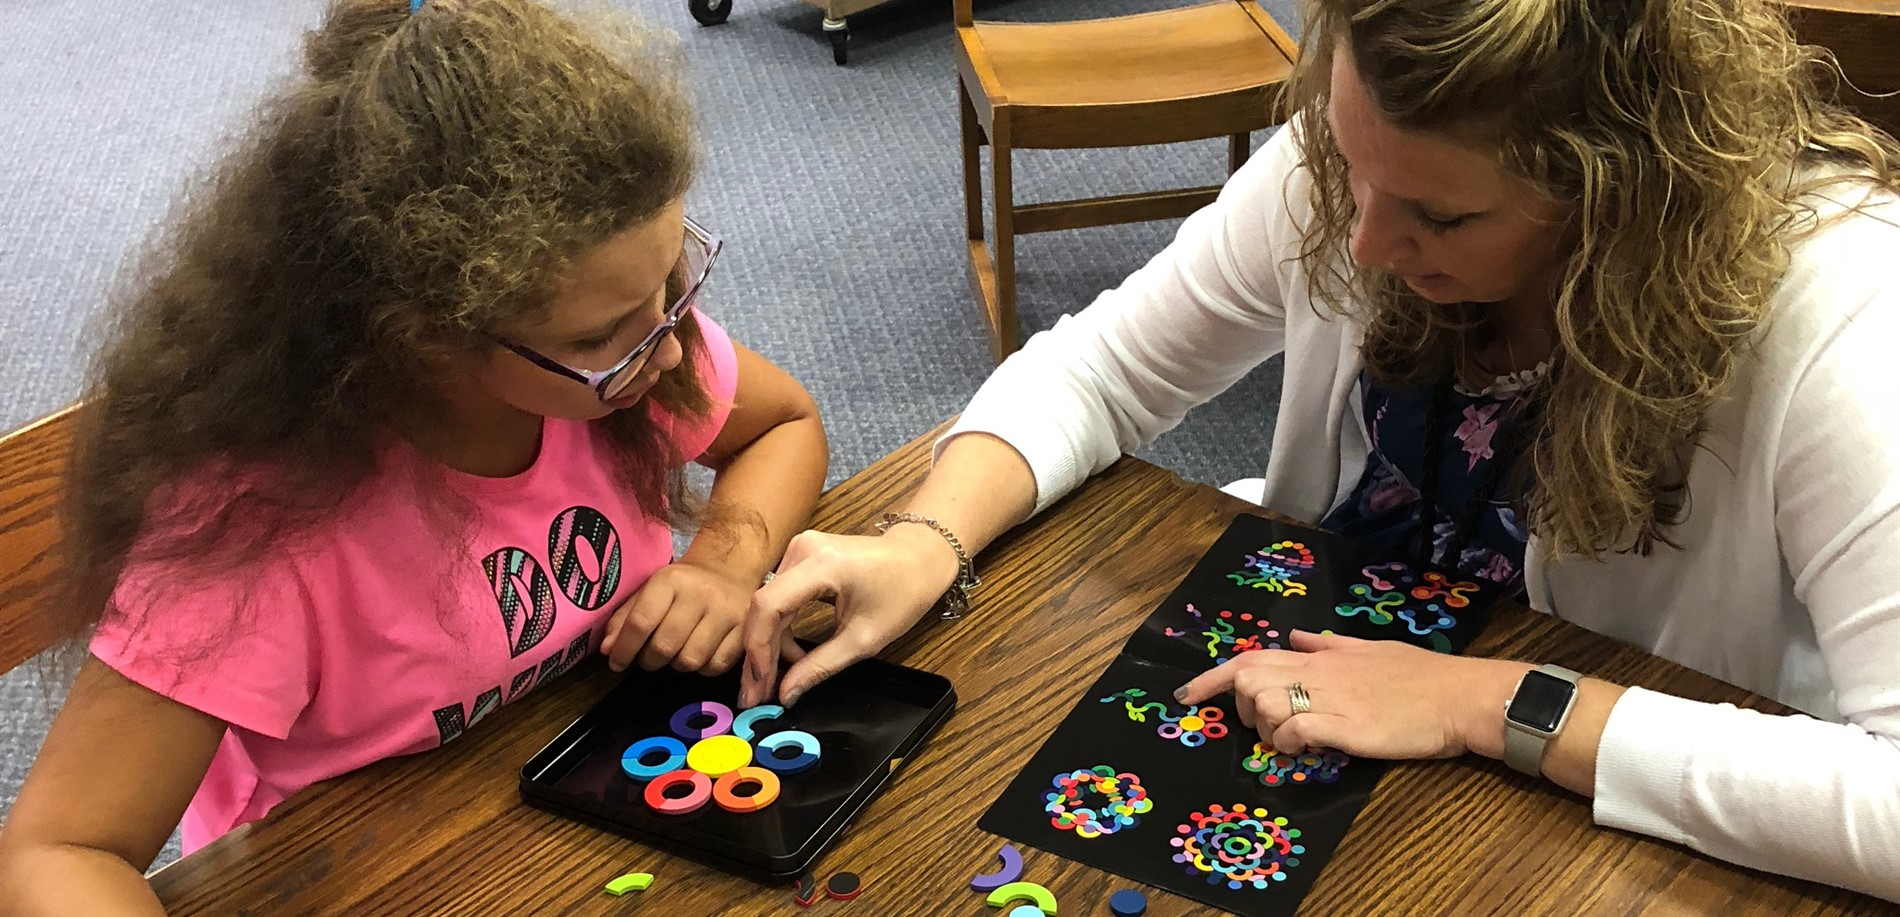 Teacher and Student making patterns together in the Makerspace